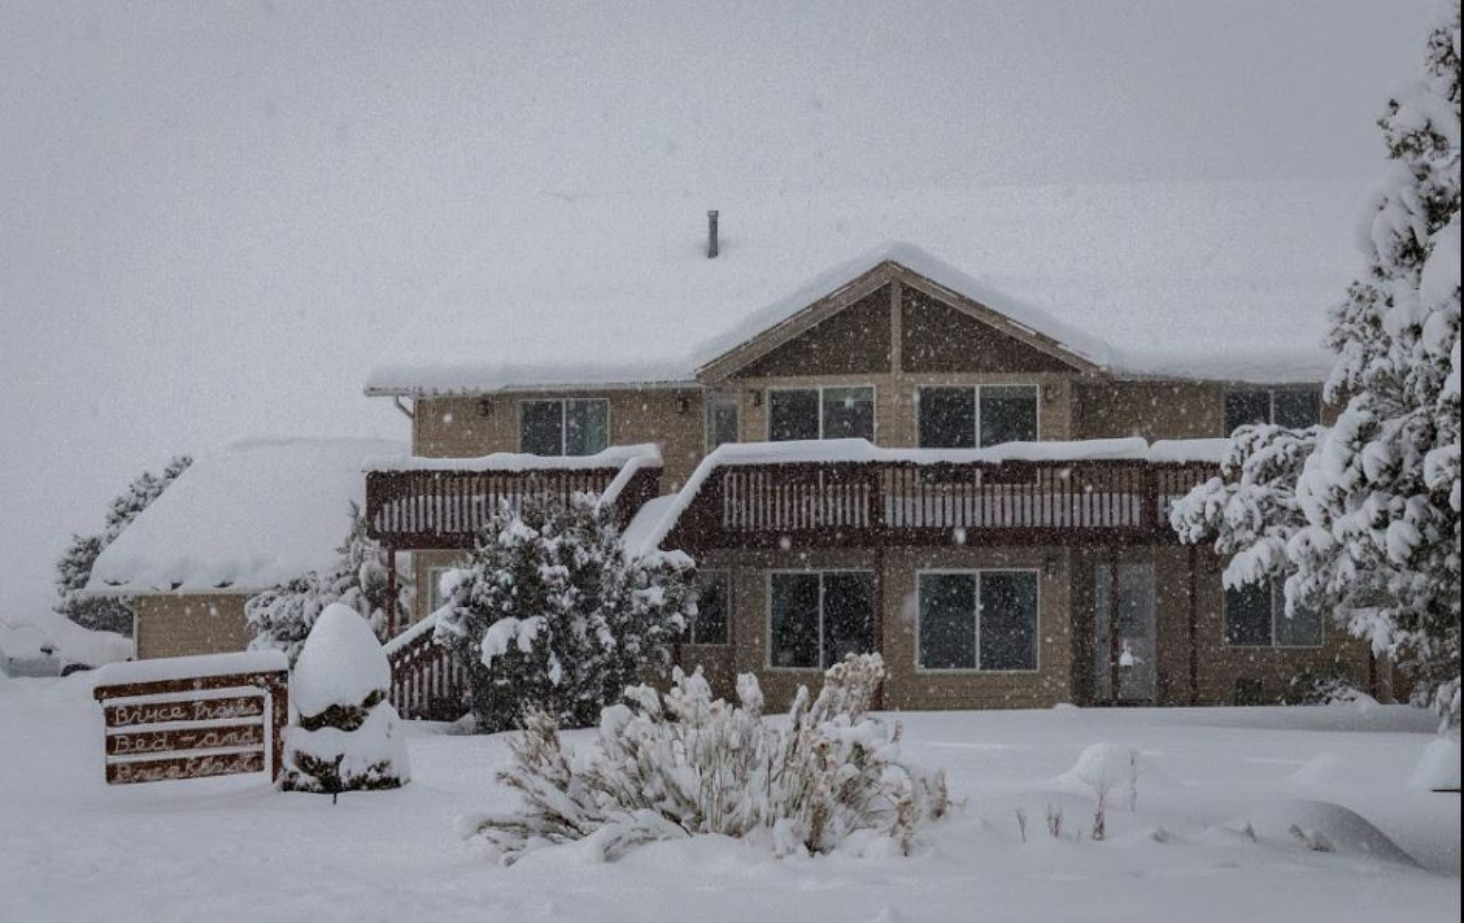 A house covered in snow at Bryce Trails Bed and Breakfast.